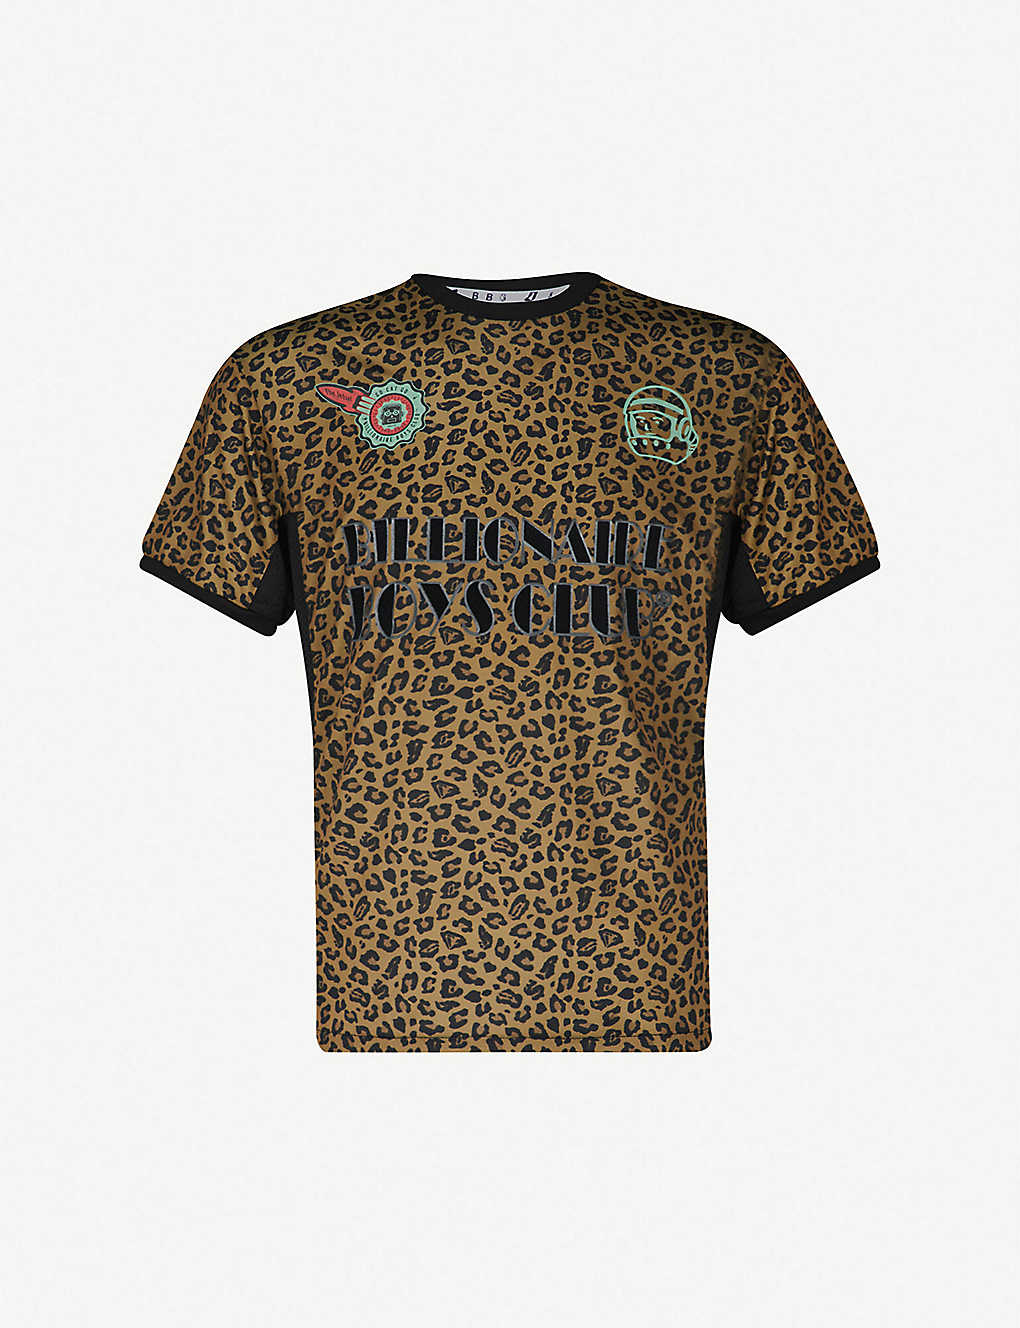 Billionaire Boys Club Leopard Print Sports Jersey T Shirt